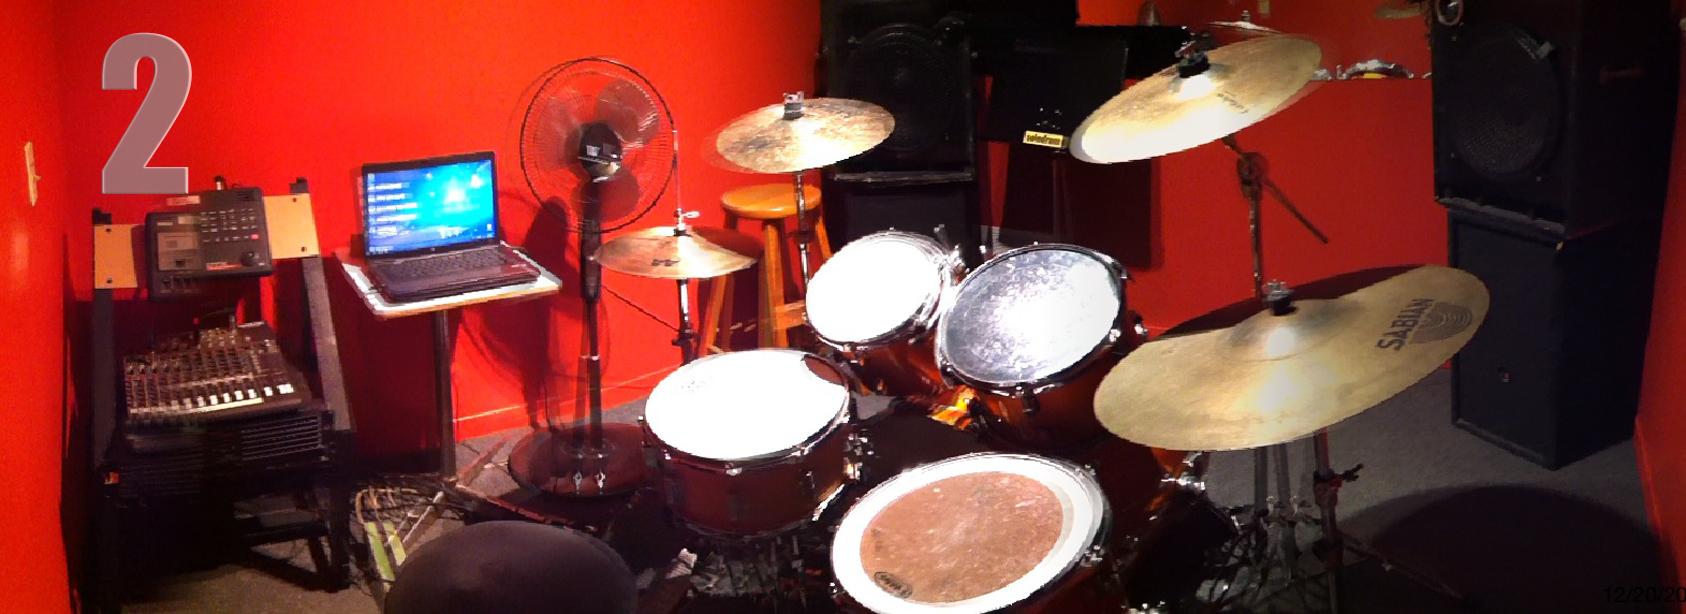 (10' x 10') drum set and a laptop